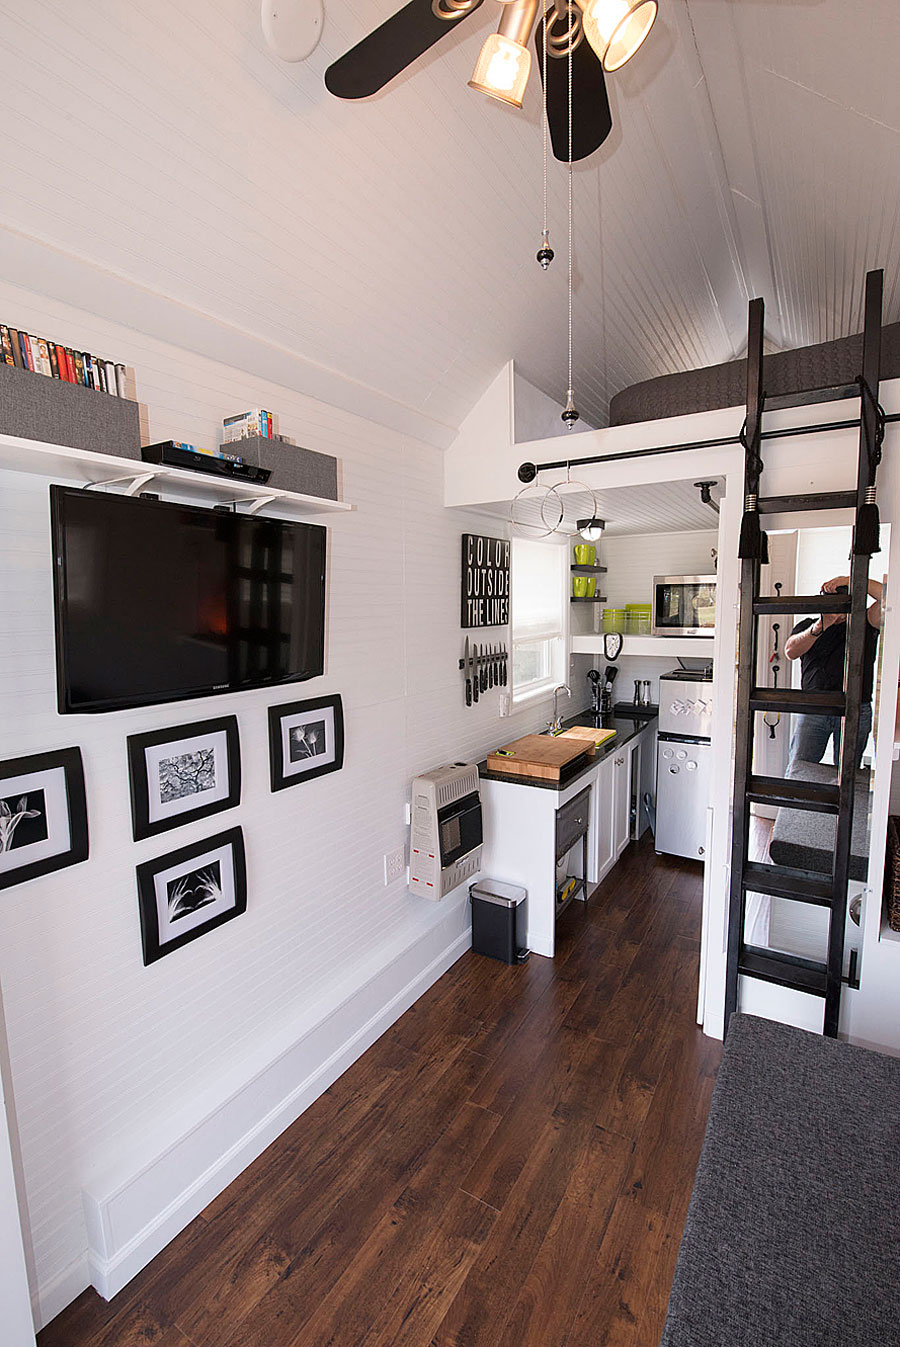 The Shoebox Tiny House Swoon